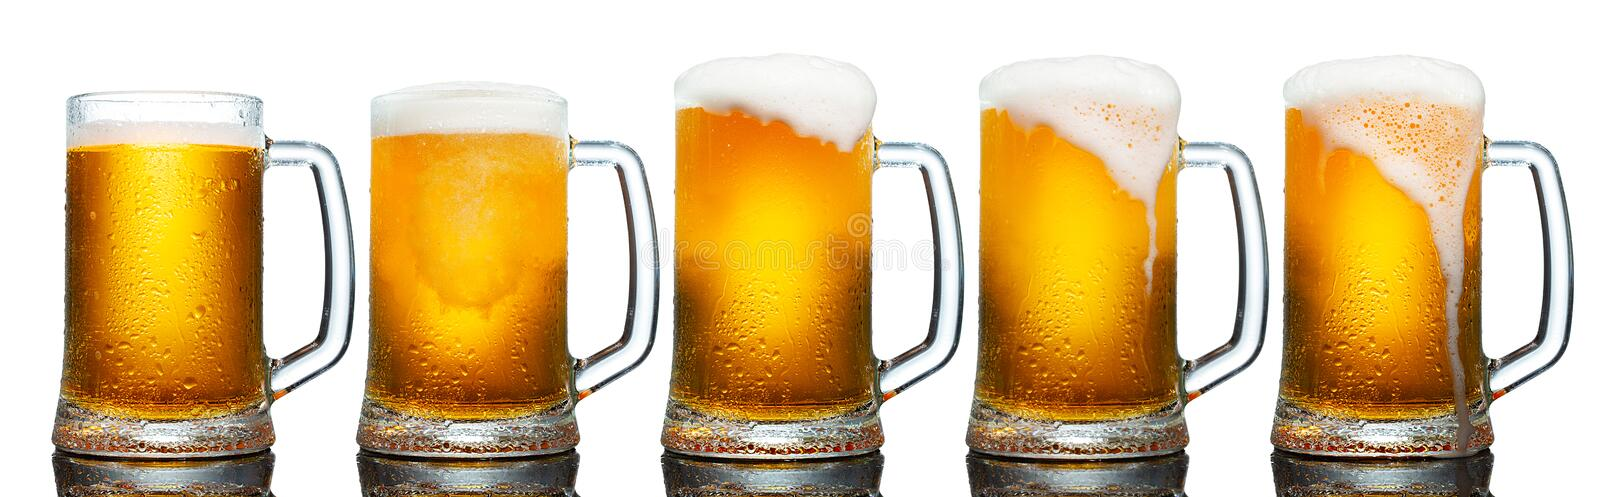 Set of mugs of cold light beer with foam isolated on white background. Set of mugs of cold light beer with foam isolated on white background royalty free stock image